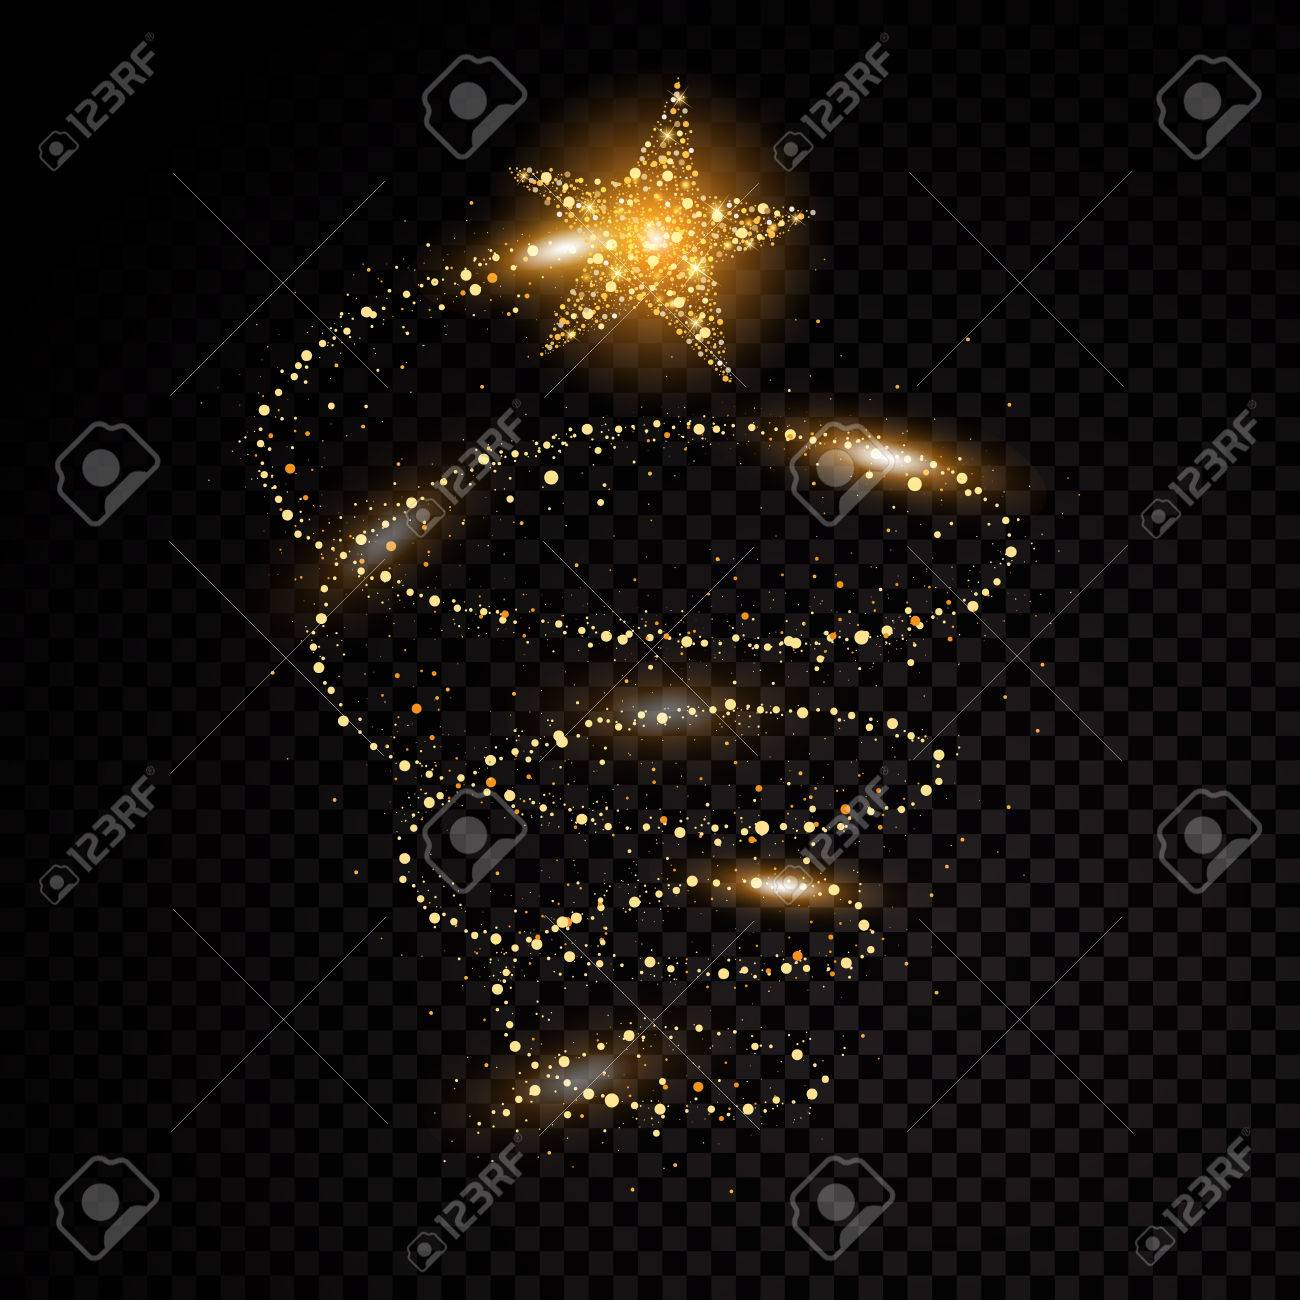 Gold glittering spiral star dust trail sparkling particles on transparent background. Space comet tail. Vector glamour fashion illustration. - 82981450